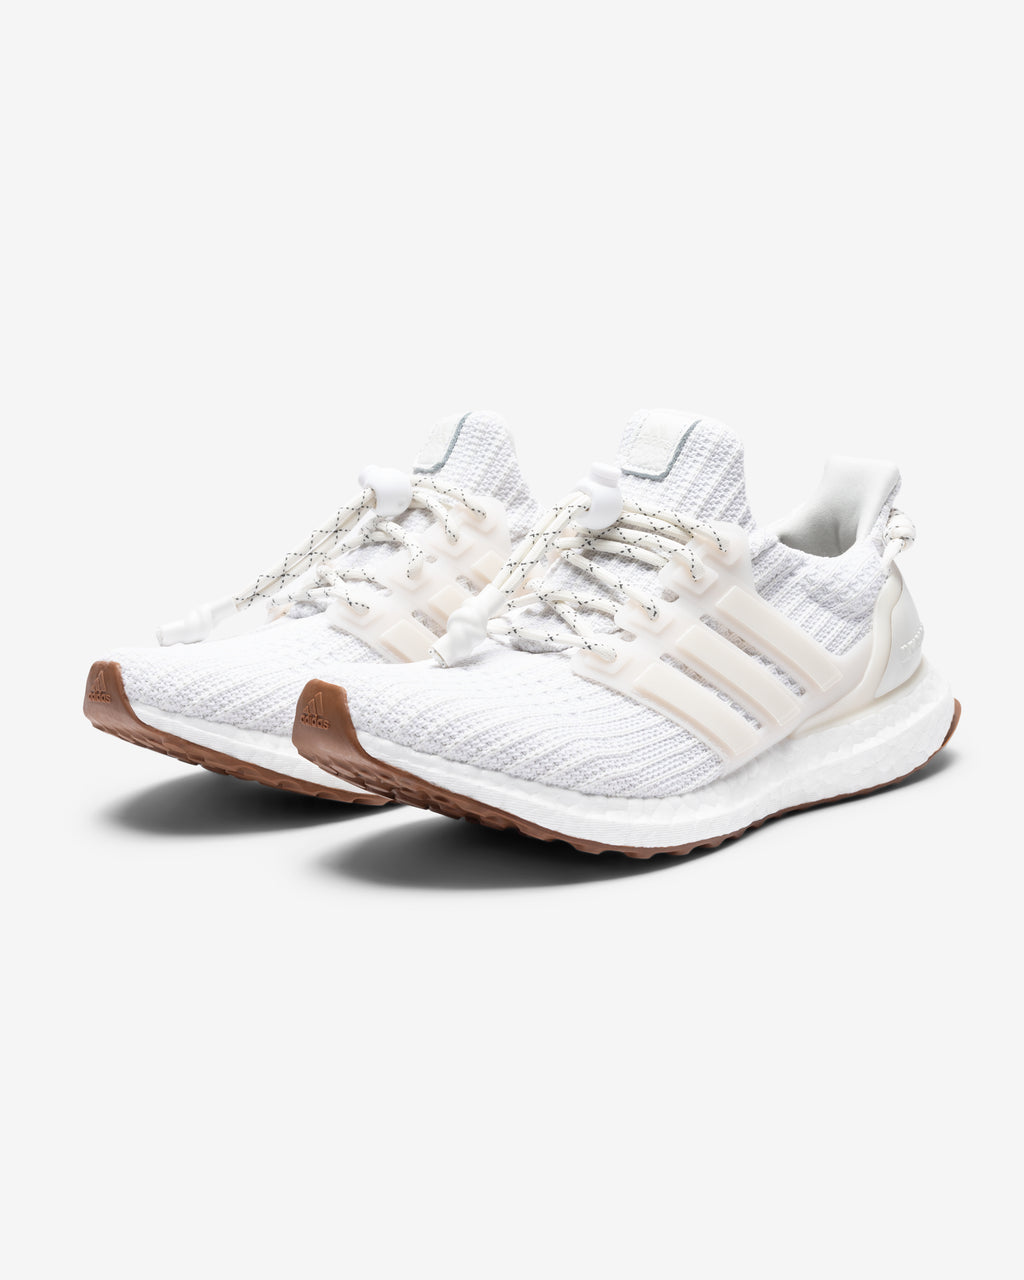 ADIDAS X IVY PARK ULTRA BOOST OG - CWHITE/ OWHITE/ WILBRN